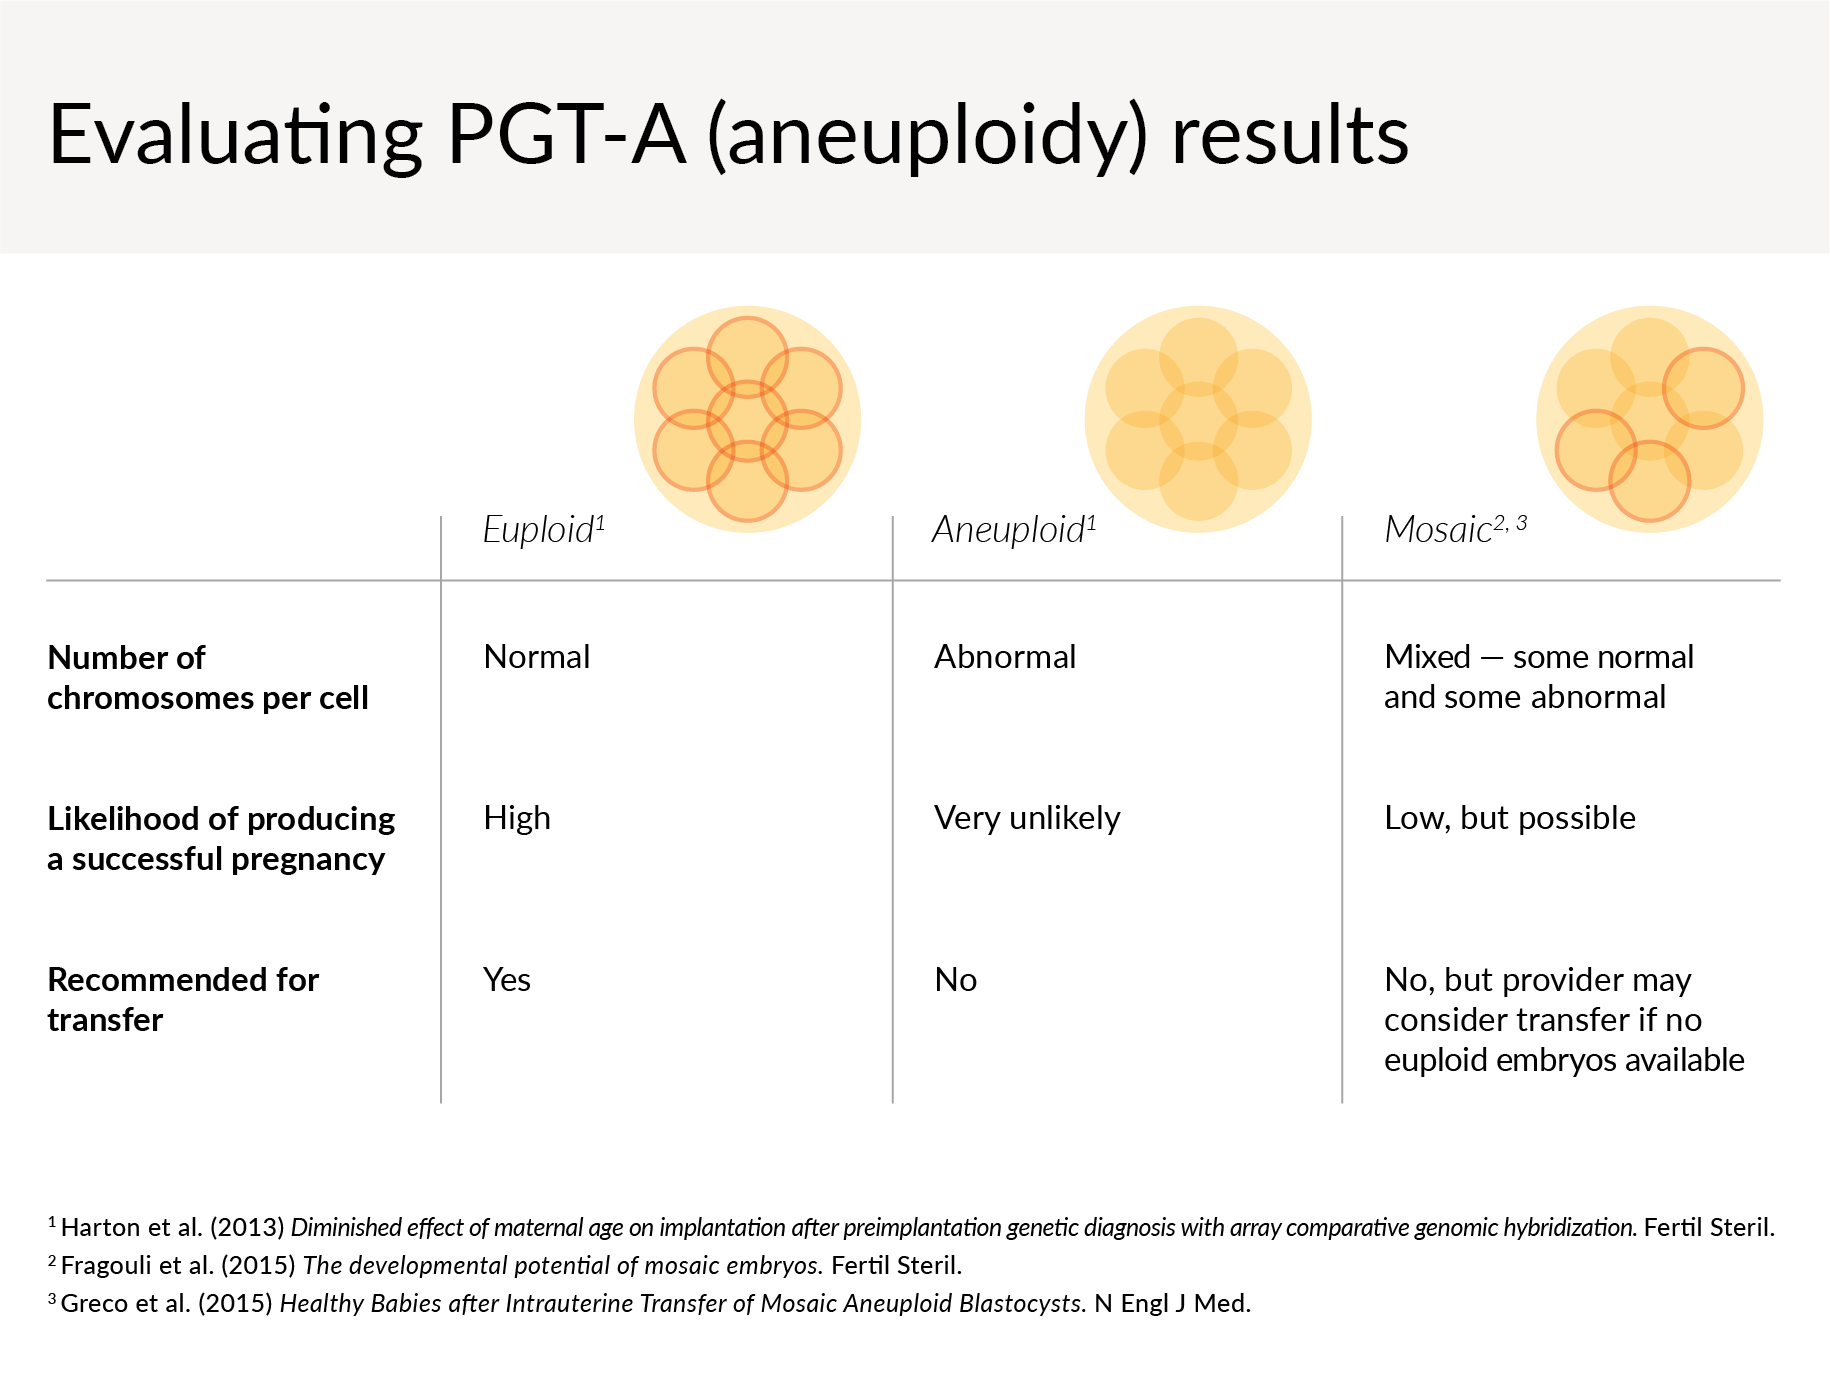 PGT-A (aneuploidy) results reveal that an embryo is euploid, aneuploid, or mosaic. Euploid embryos have a normal number of chromosomes per cell and have a high likelihood of producing a successful pregnancy, and are recommended for transfer.